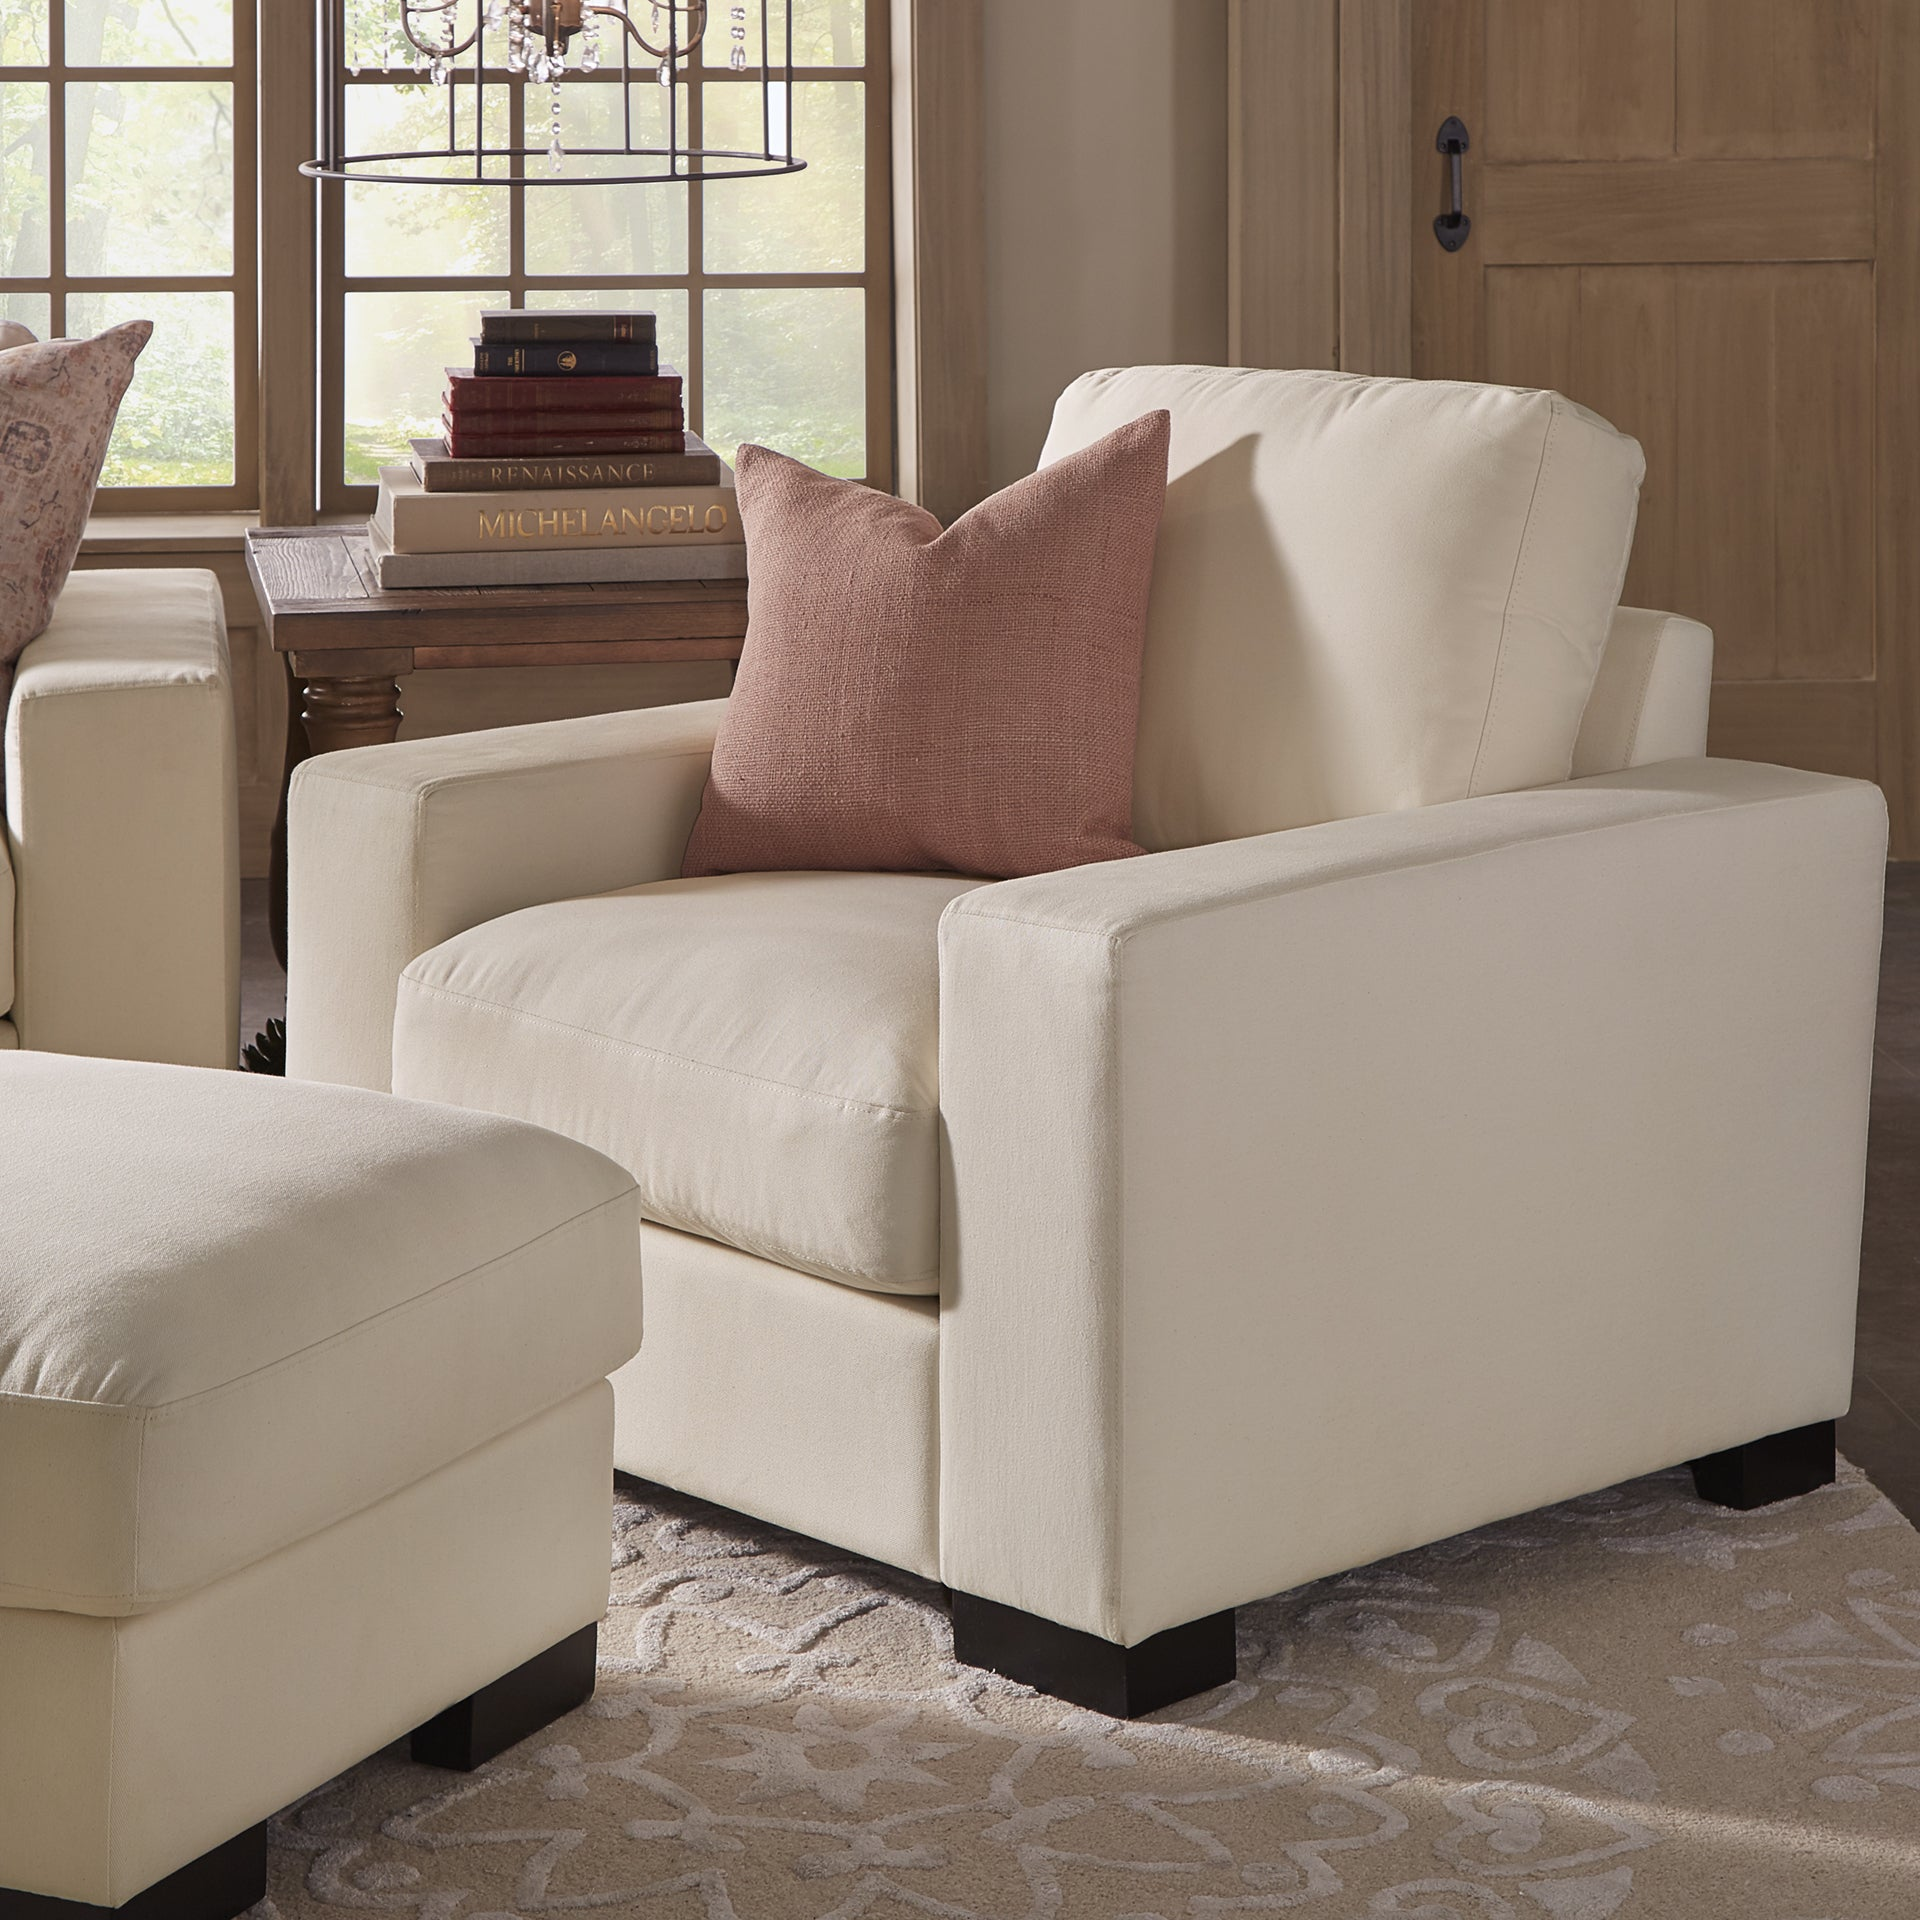 Shop Lionel II White Cotton Fabric Down-Filled Chair by iNSPIRE Q Artisan - Free Shipping Today - Overstock.com - 14332790 & Shop Lionel II White Cotton Fabric Down-Filled Chair by iNSPIRE Q ...